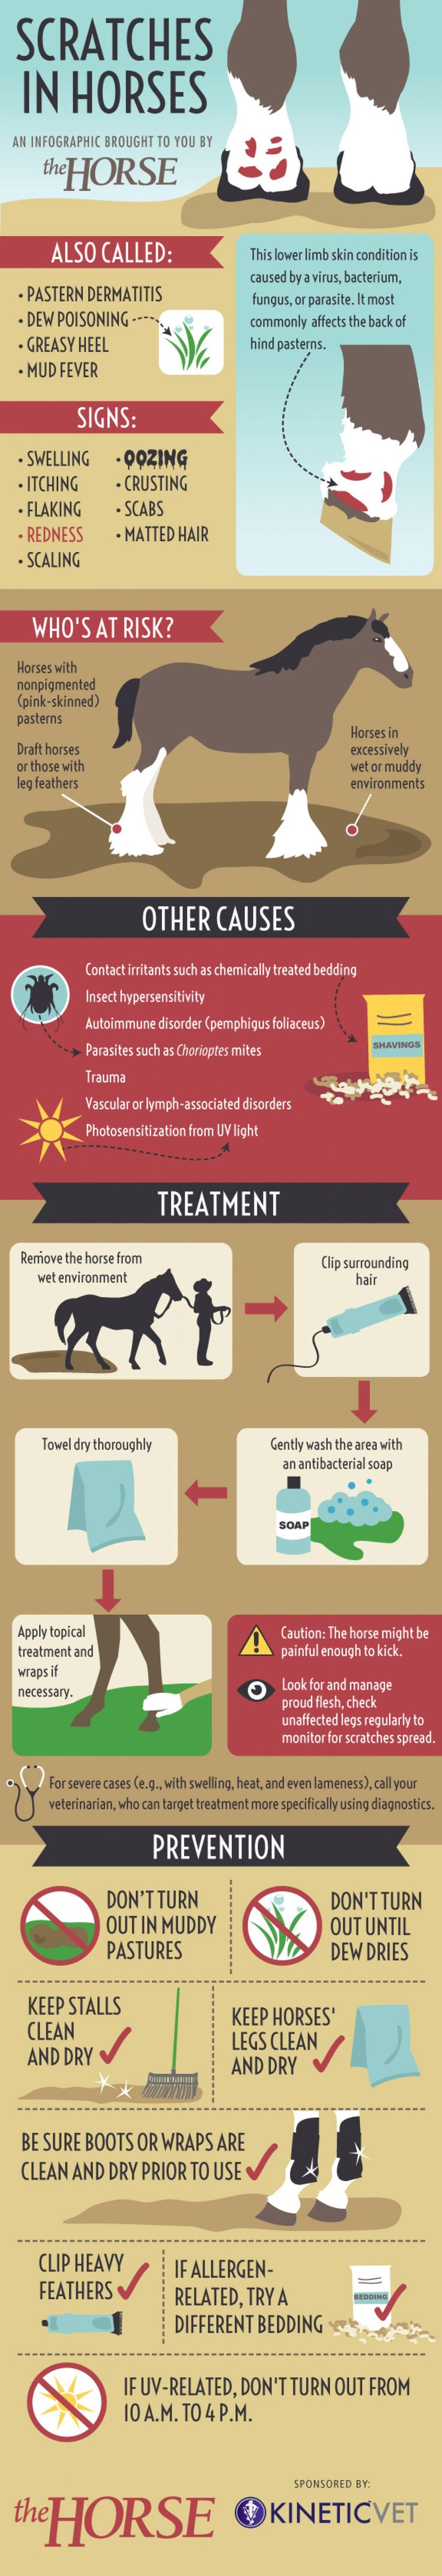 Scratches In Horses Infographic